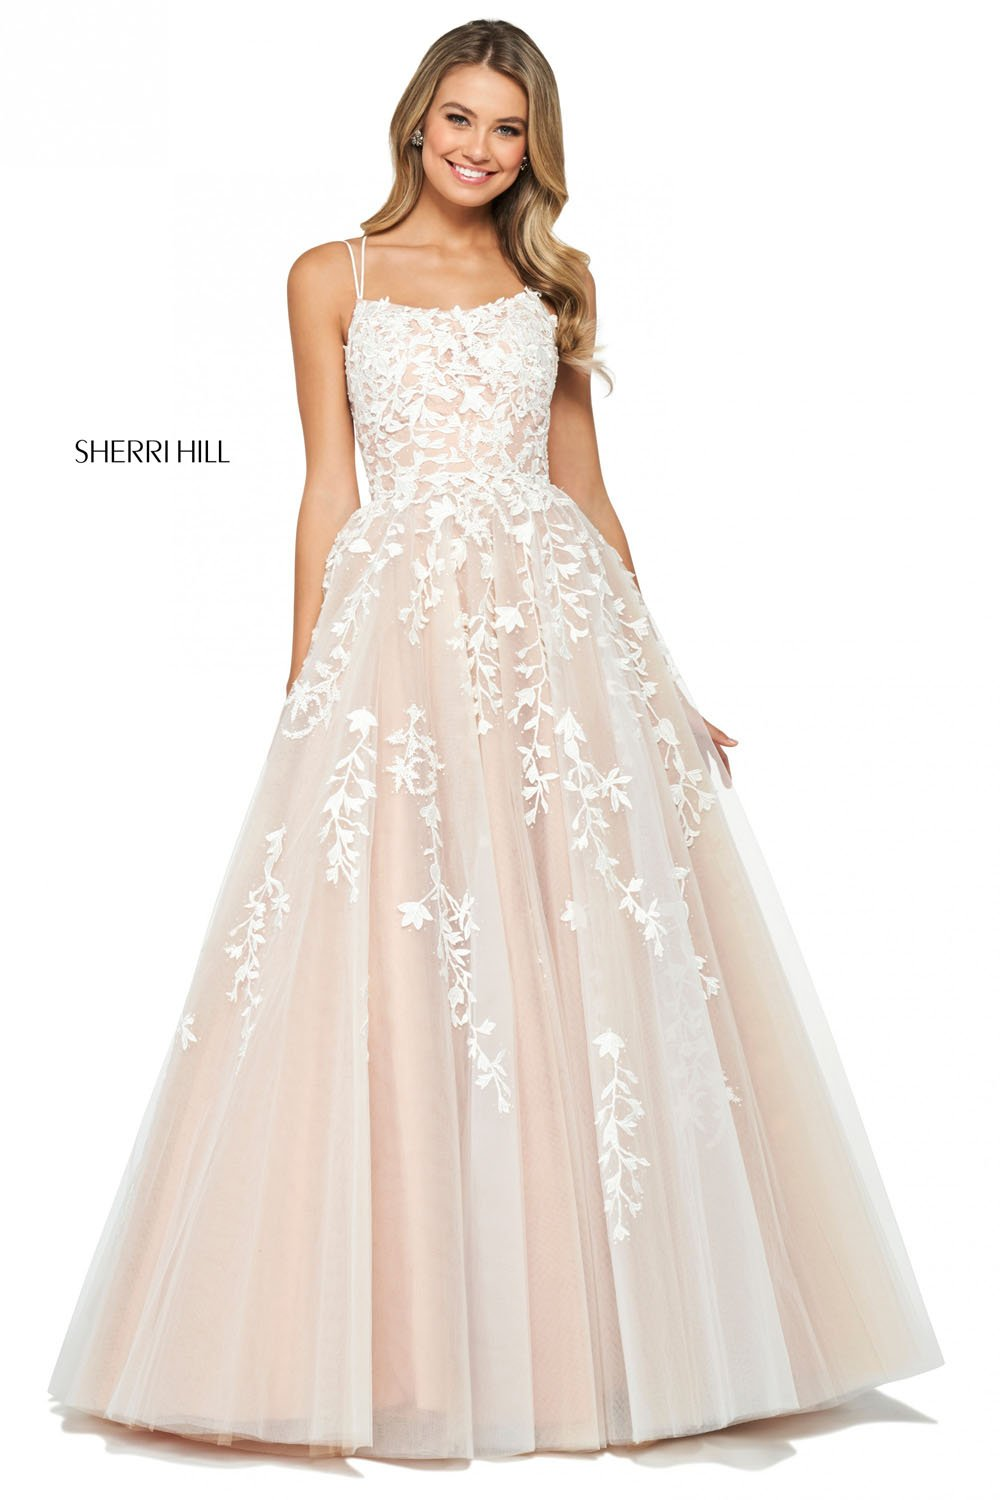 Sherri Hill 53116 prom dress images.  Sherri Hill 53116 is available in these colors: Black, Gold, Yellow, Light Blue, Blush, Red, Ivory Nude, Lilac, Navy, Wine, Bright Pink, Coral.